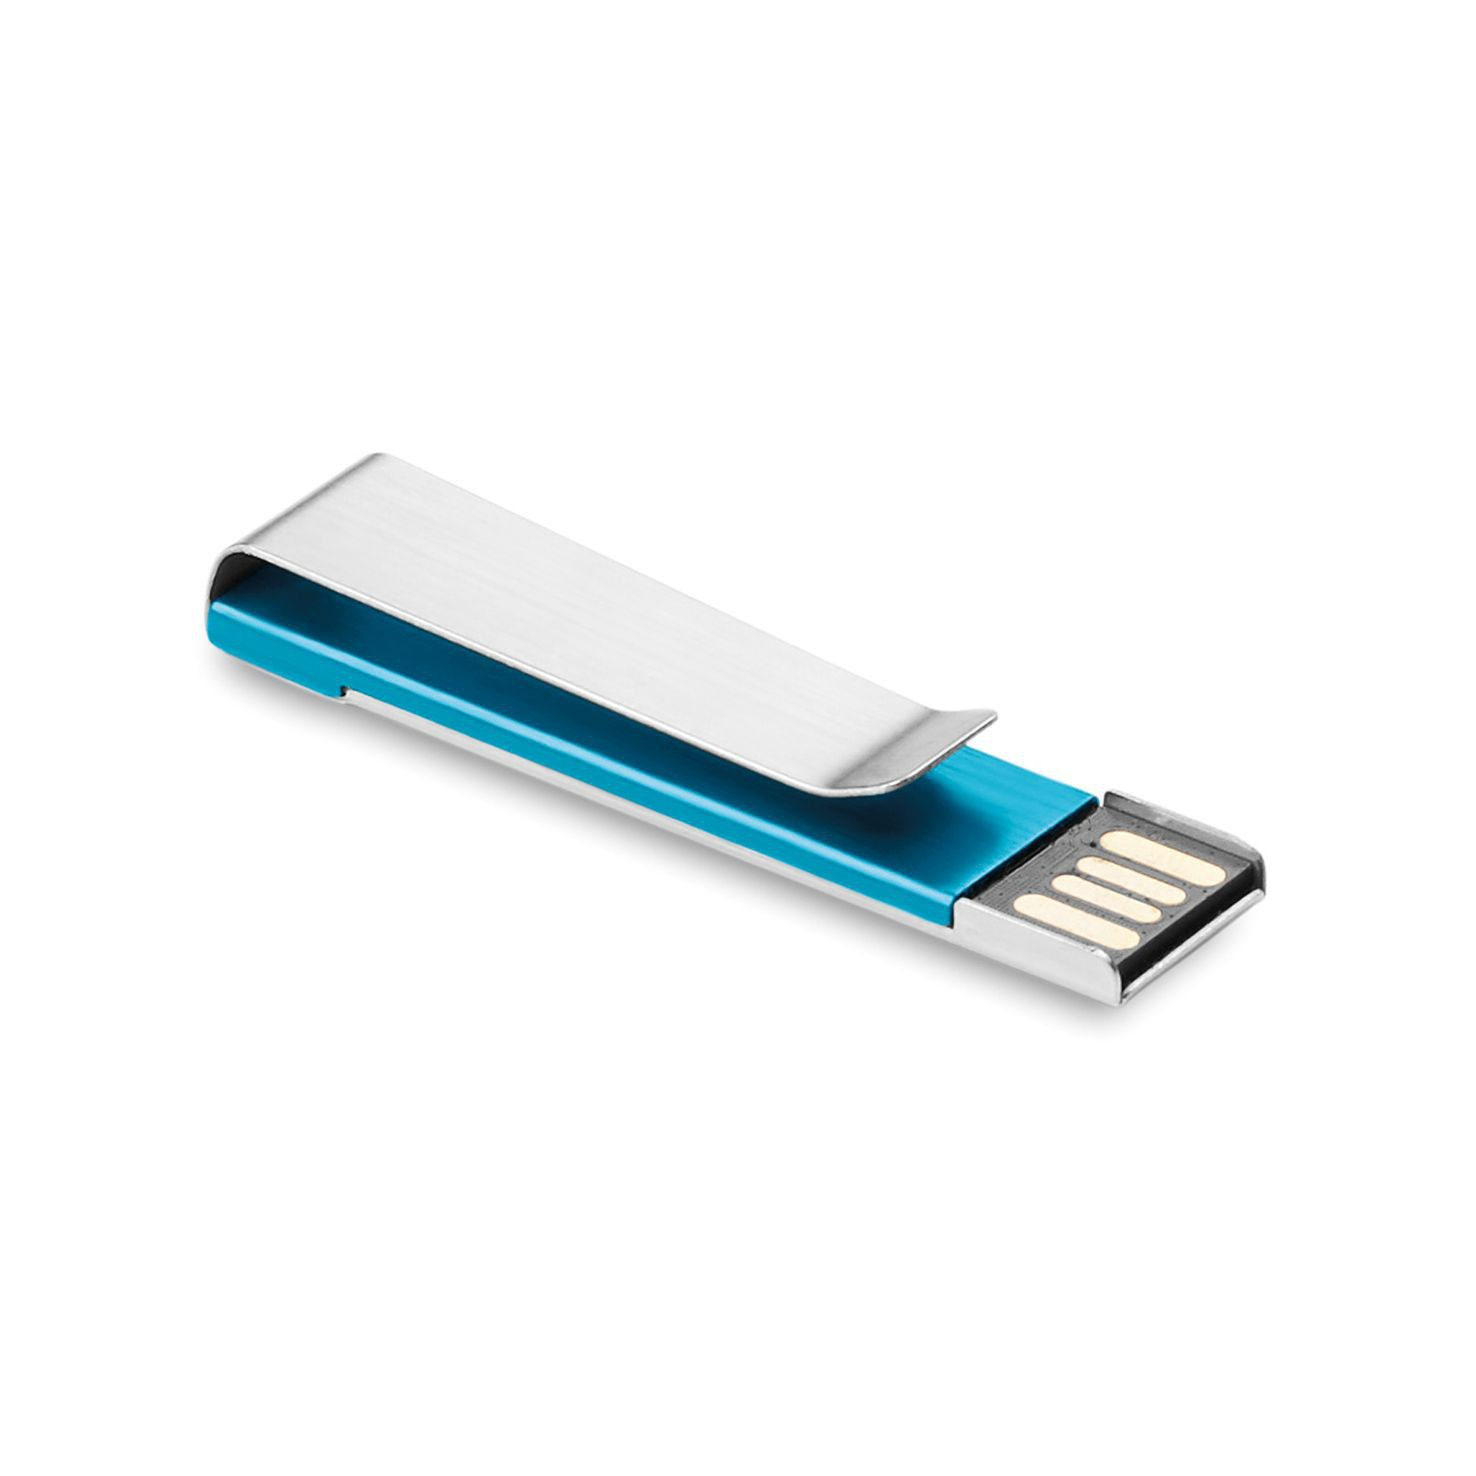 Blauwe USB stick | Metalen clip | 8GB